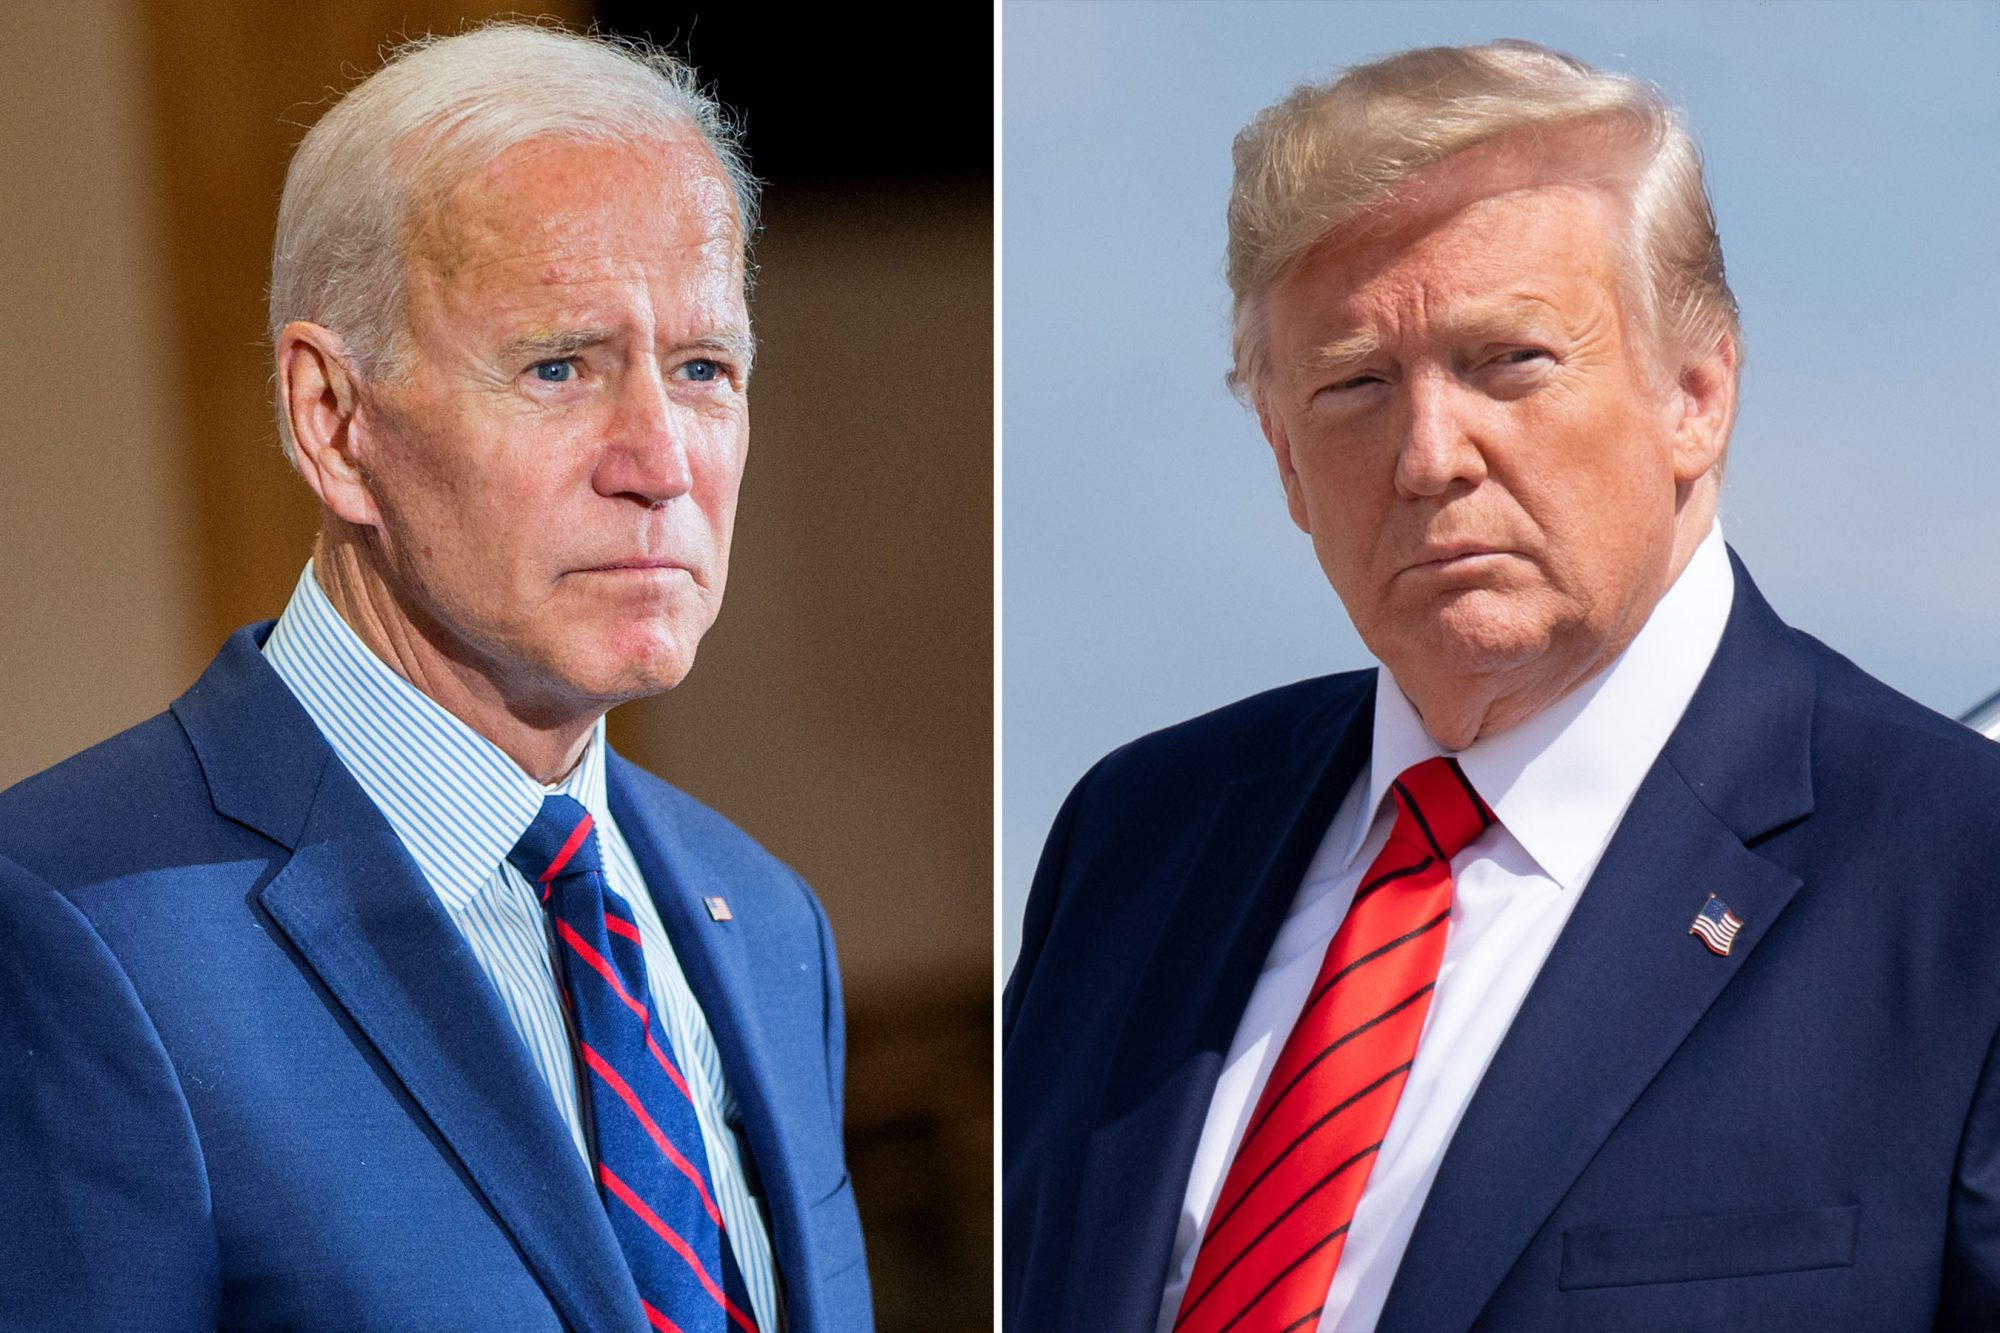 Biden Says He Doesn't Want to 'Take the Bait' When Debating Trump |  PEOPLE.com